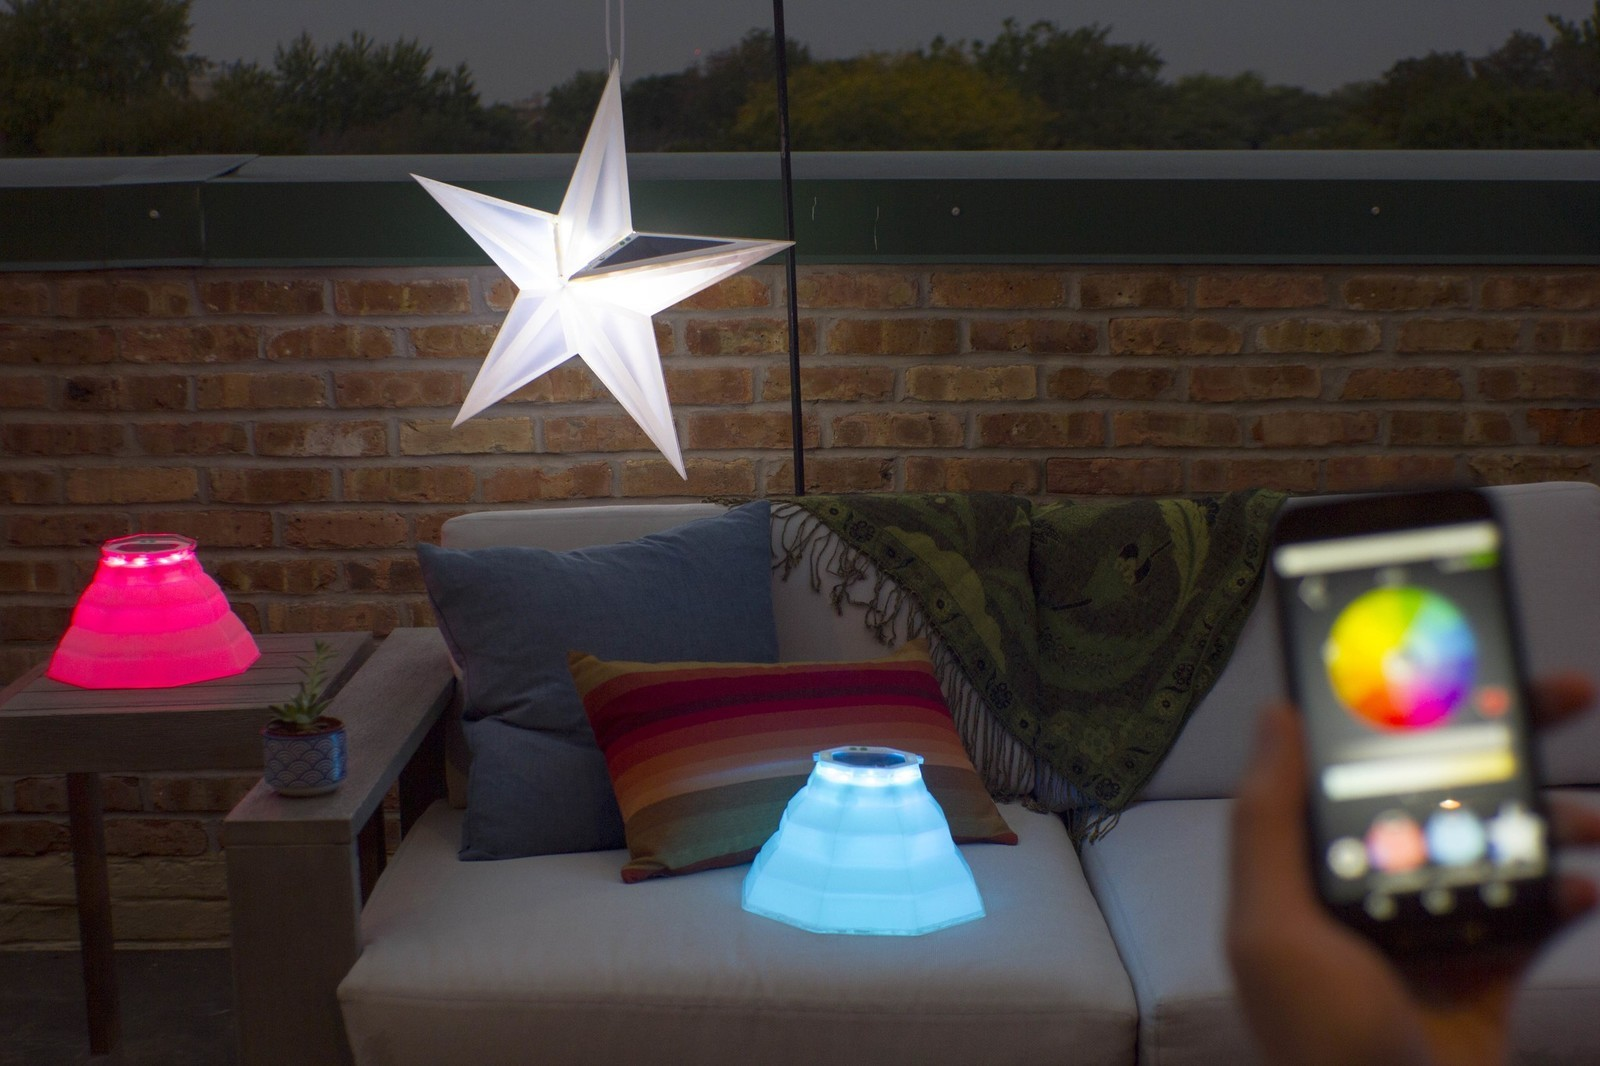 revitalize any outdoor area with colorful solar lights controlled